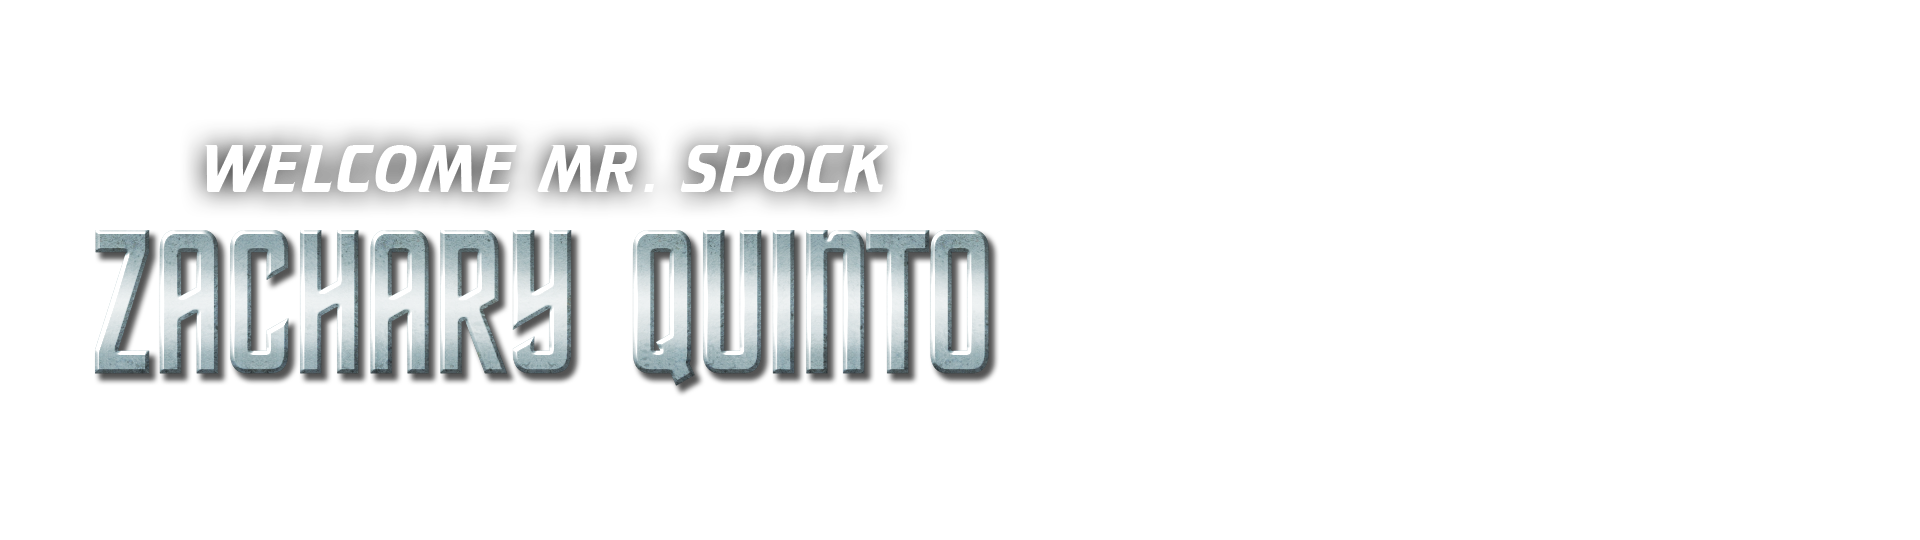 Welcome Mr. Spock Zachary Quinto